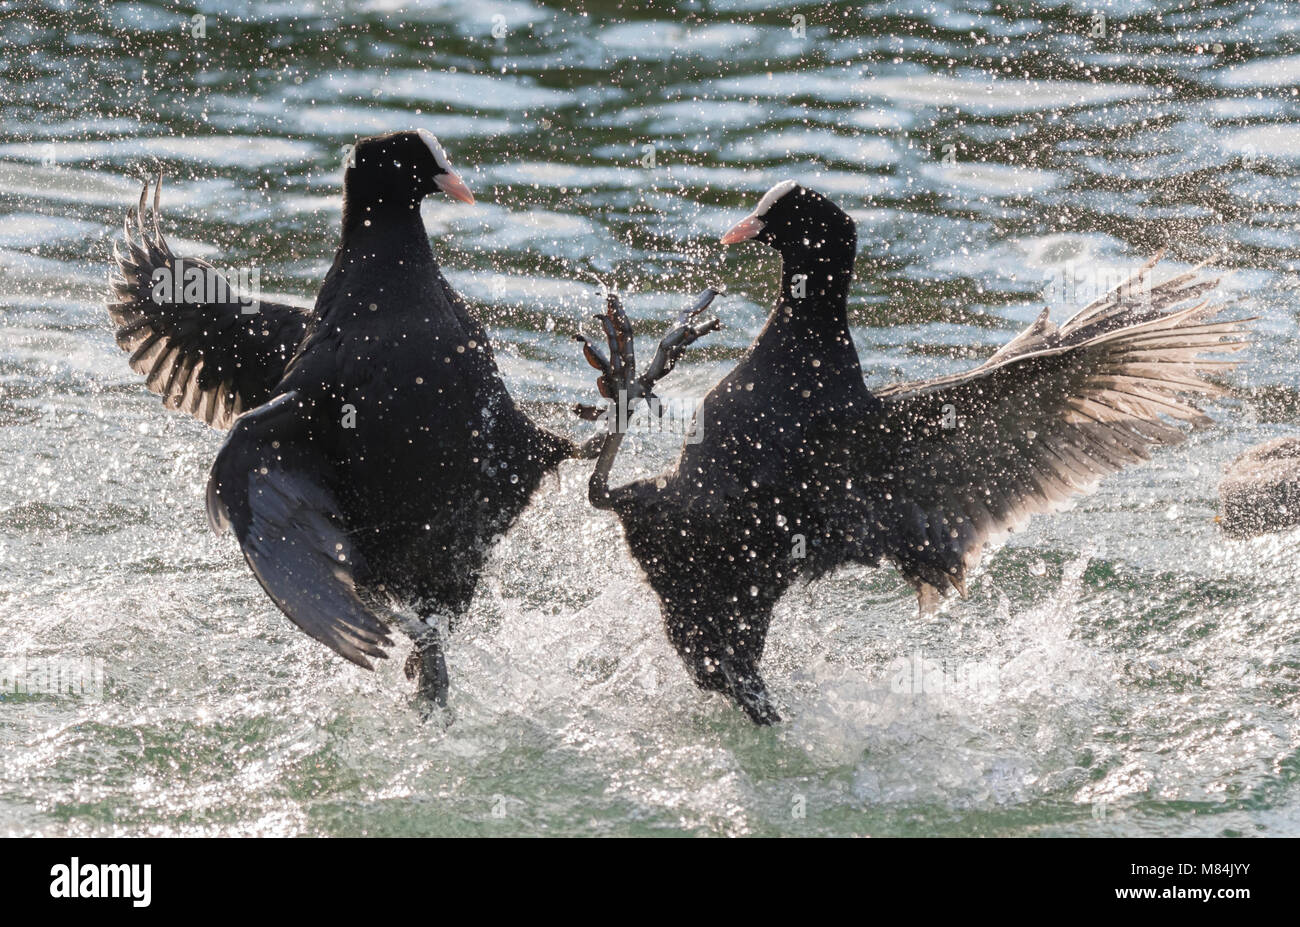 Pair of Eurasian Coots (Fulica atra) in water being aggressive in a lake in the UK. Stock Photo